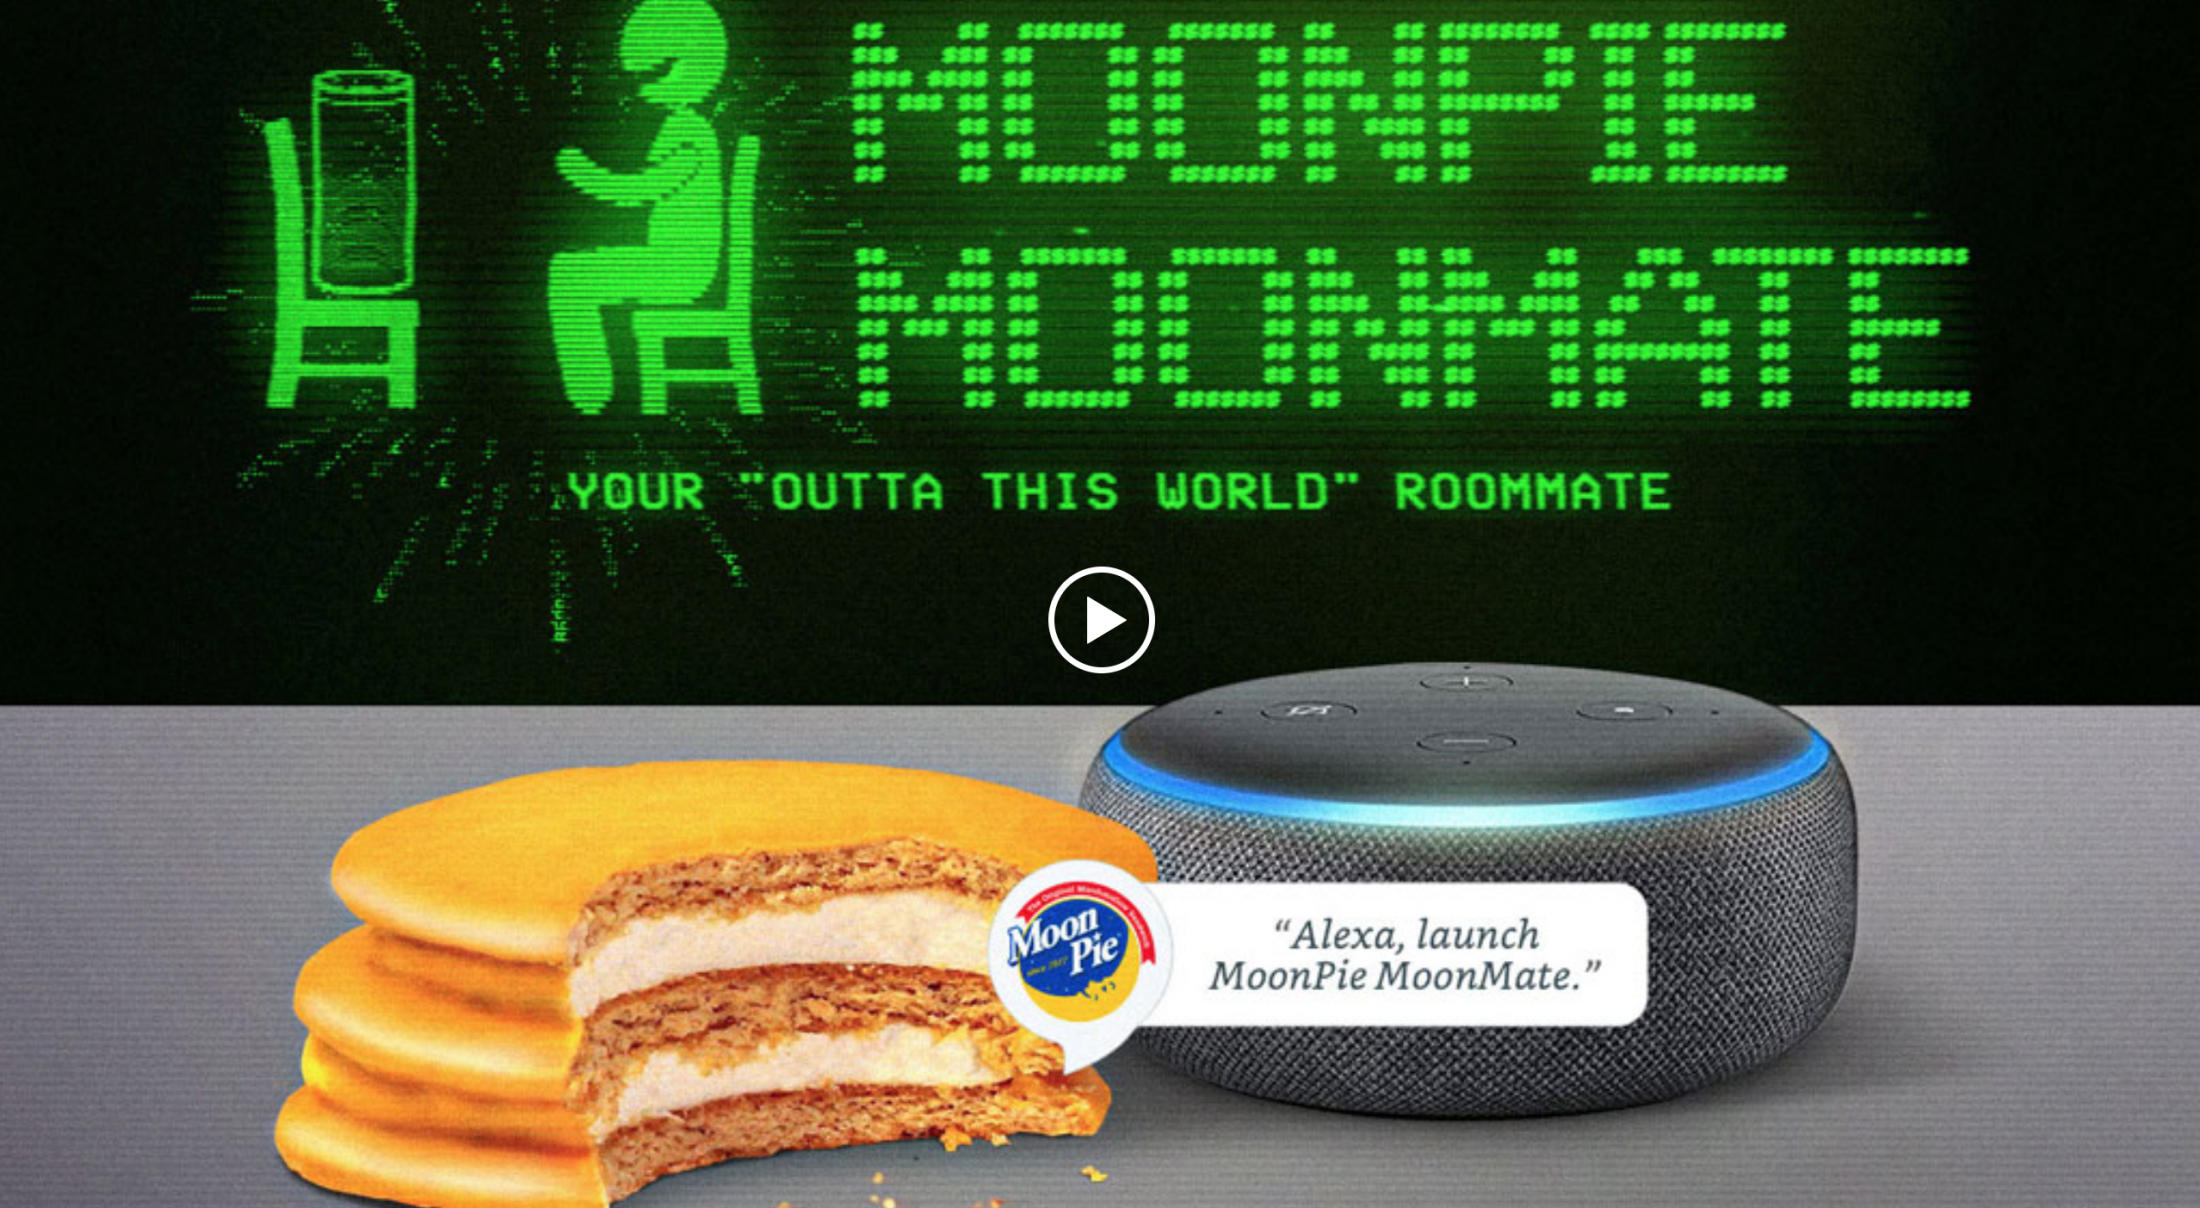 Thumbnail for MoonPie MoonMate